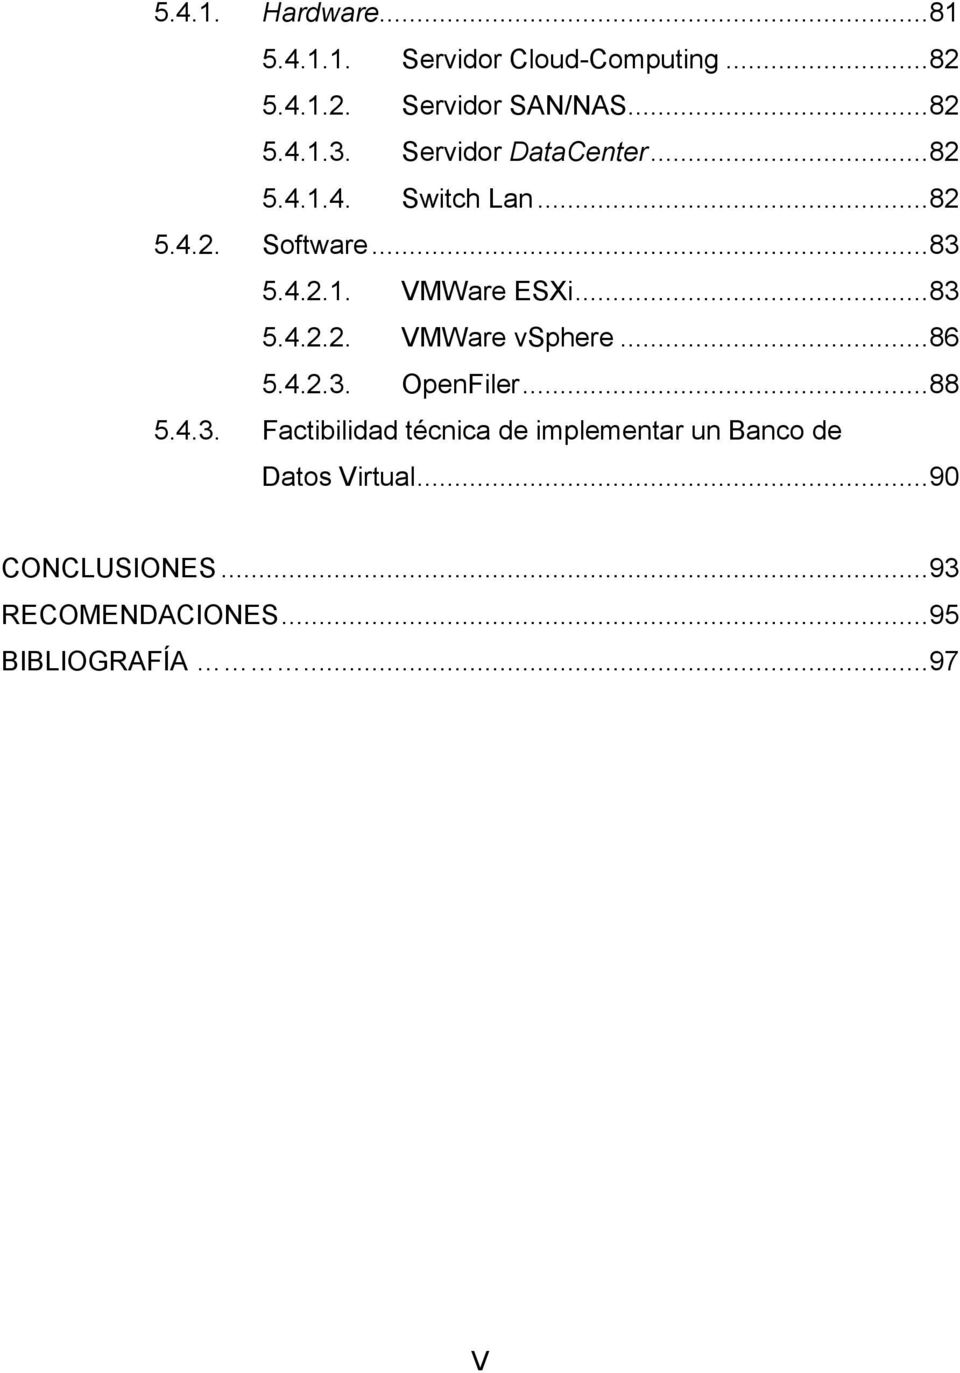 .. 83 5.4.2.2. VMWare vsphere... 86 5.4.2.3. OpenFiler... 88 5.4.3. Factibilidad técnica de implementar un Banco de Datos Virtual.